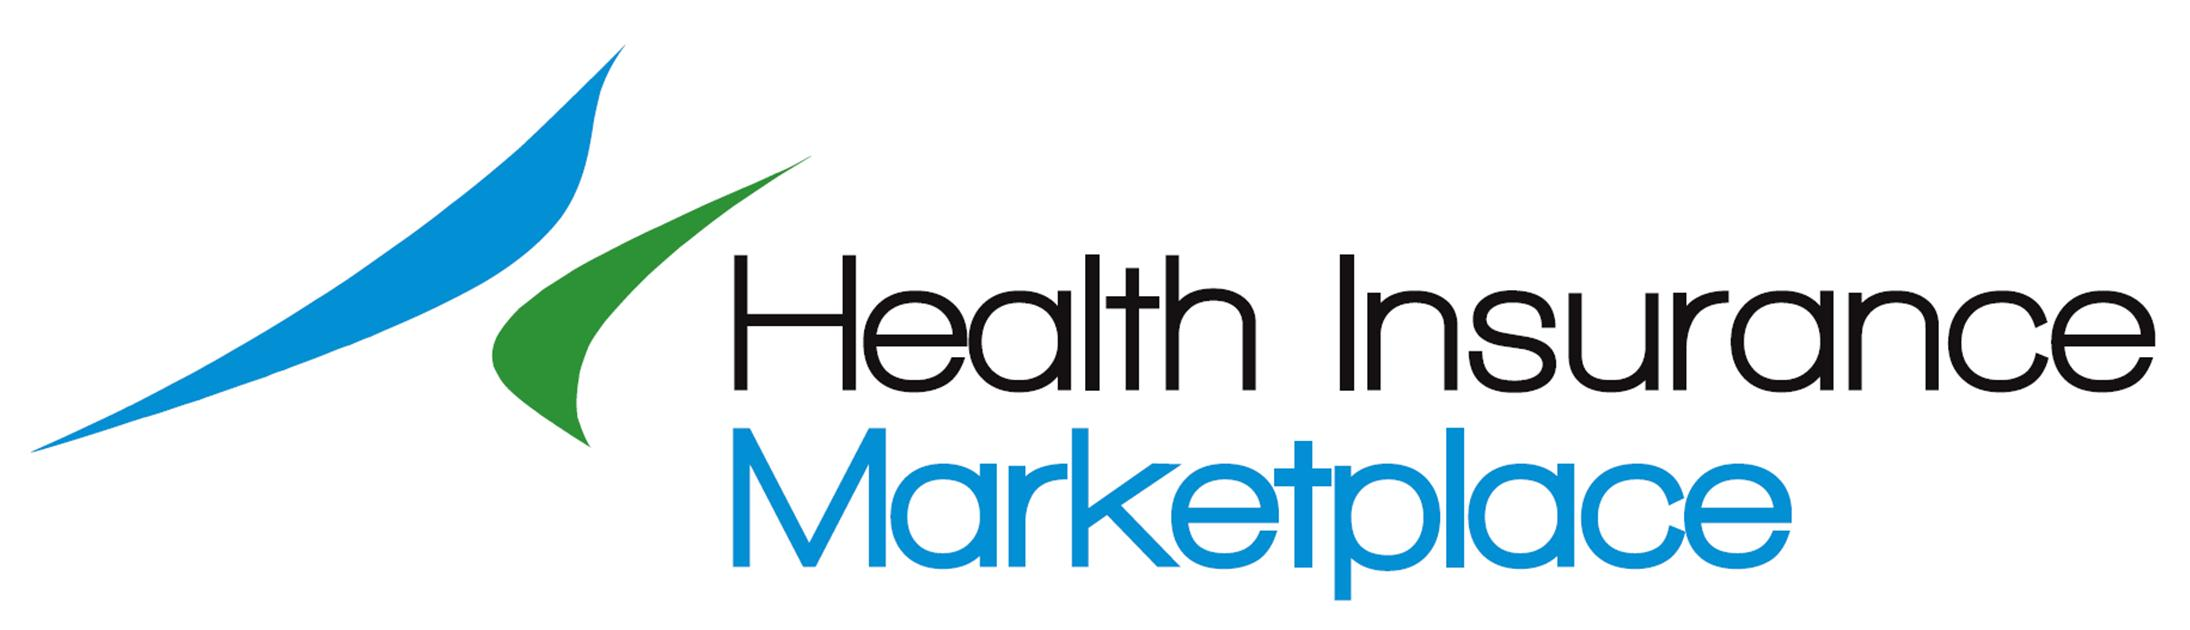 Affordable Care Act Information | Ocean County Library Marketplace Healthcare